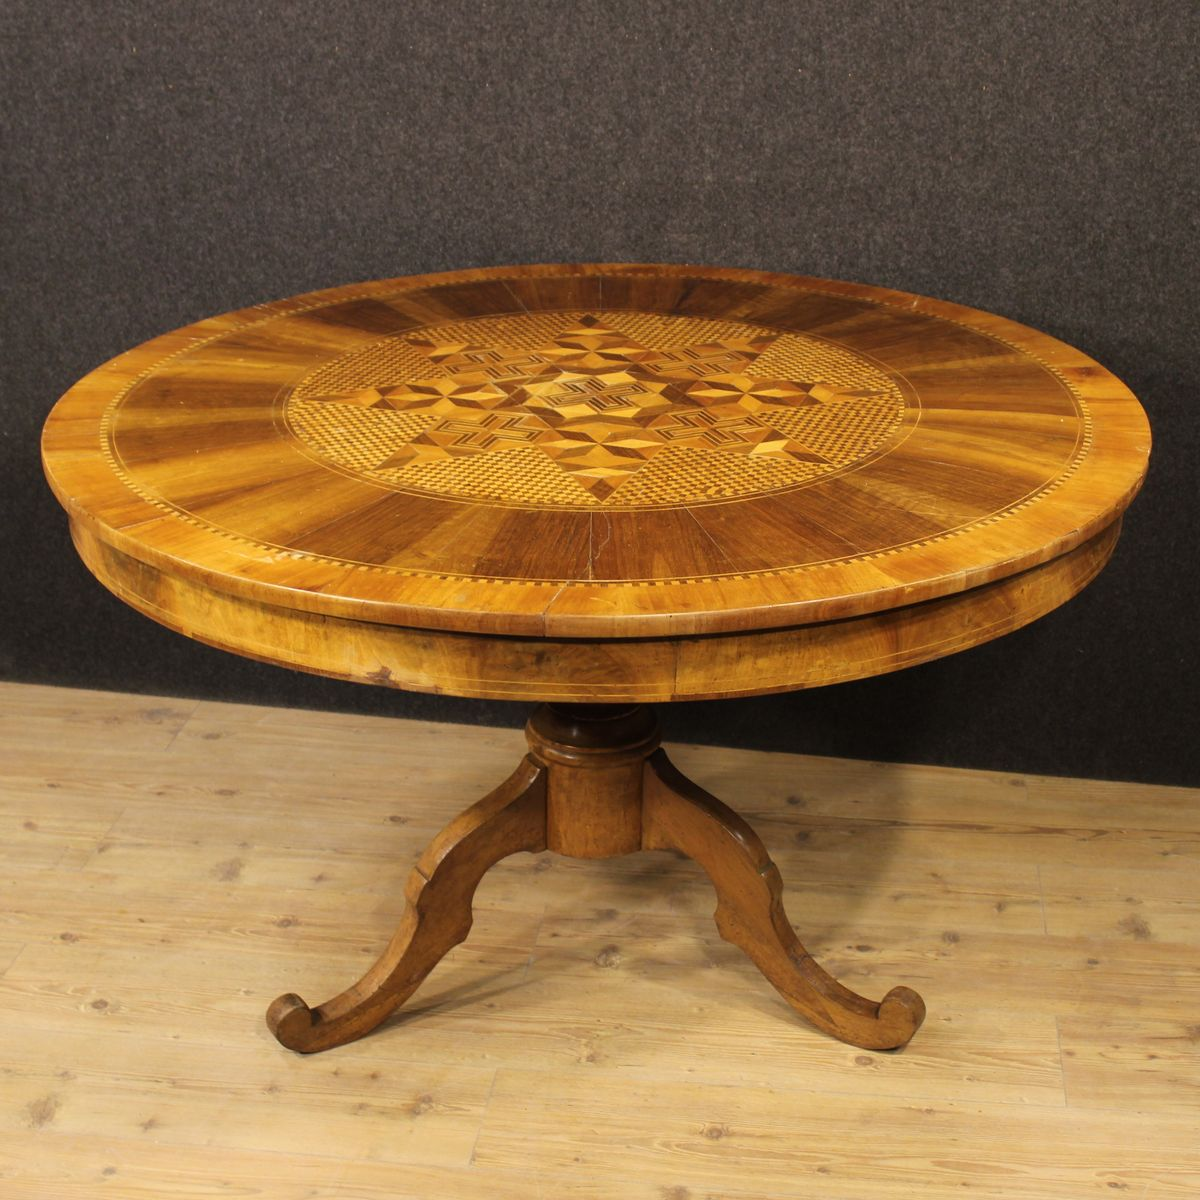 Antique Italian Carved Table With Inlaid Wood